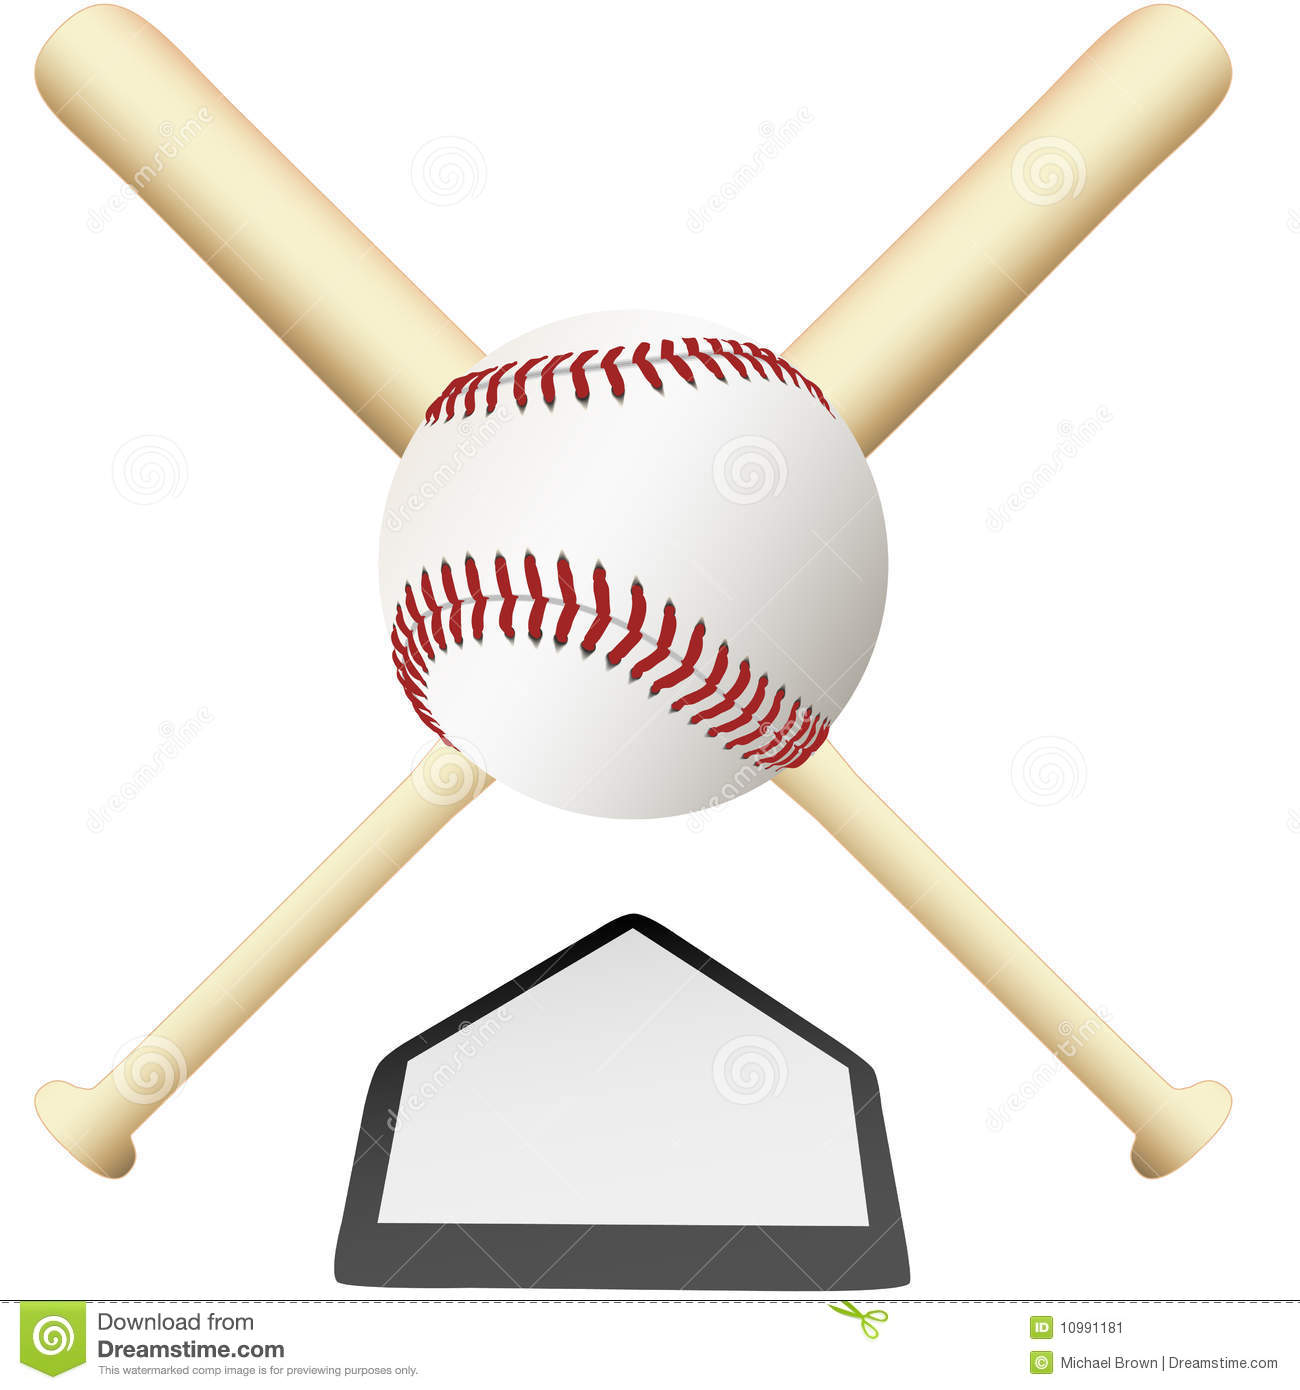 Crossed Baseball Bats Stock Images - Image: 5827354